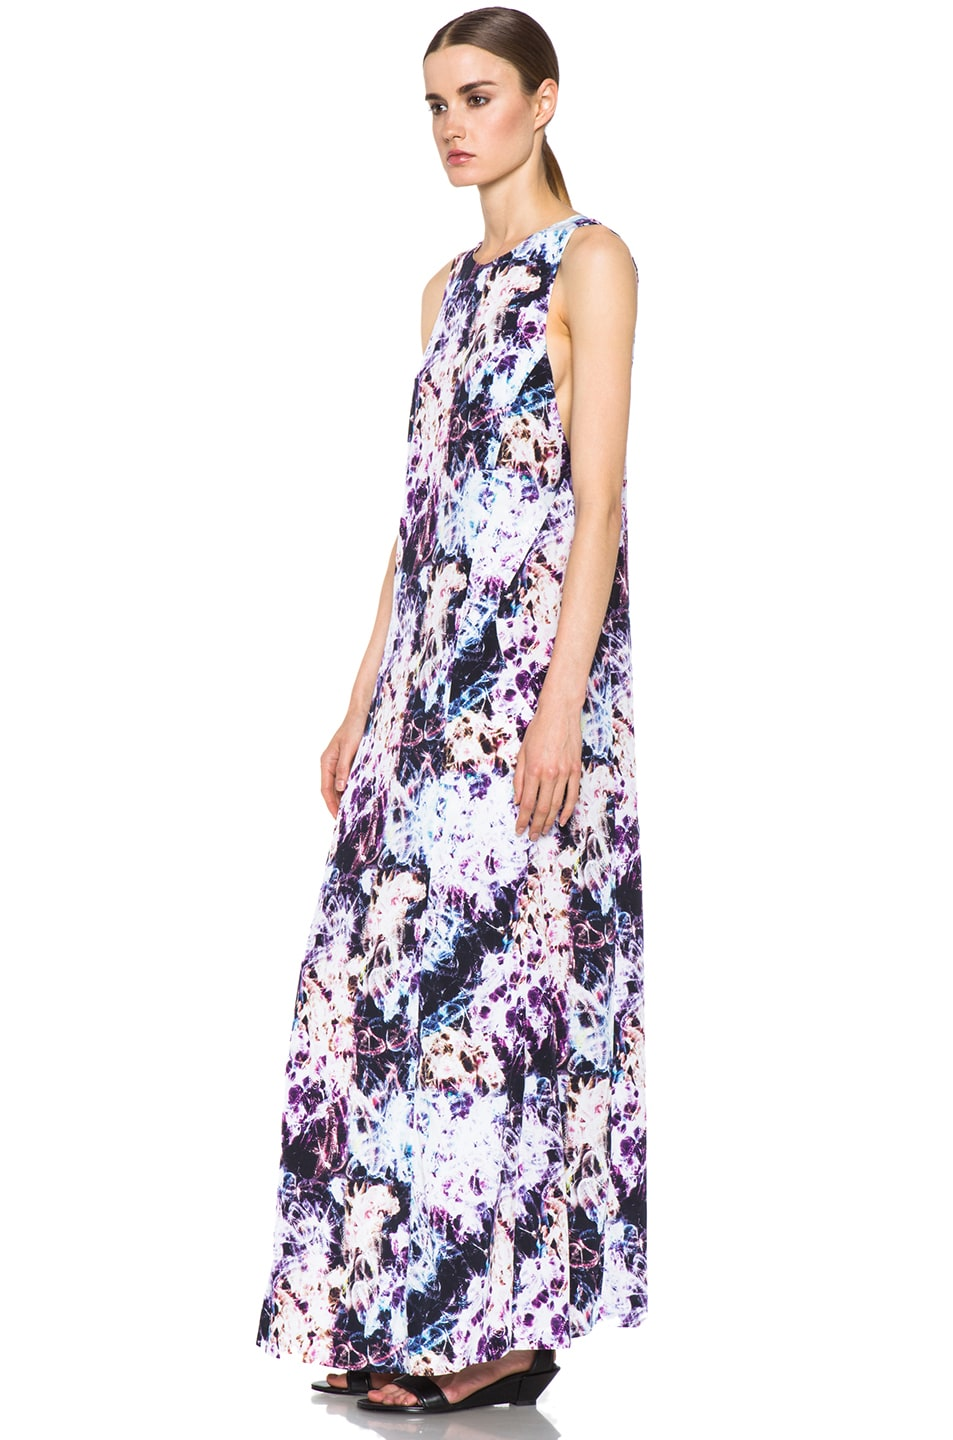 Image 2 of Theyskens' Theory Dlilac Ilight Maxi Dress in Bright Multi